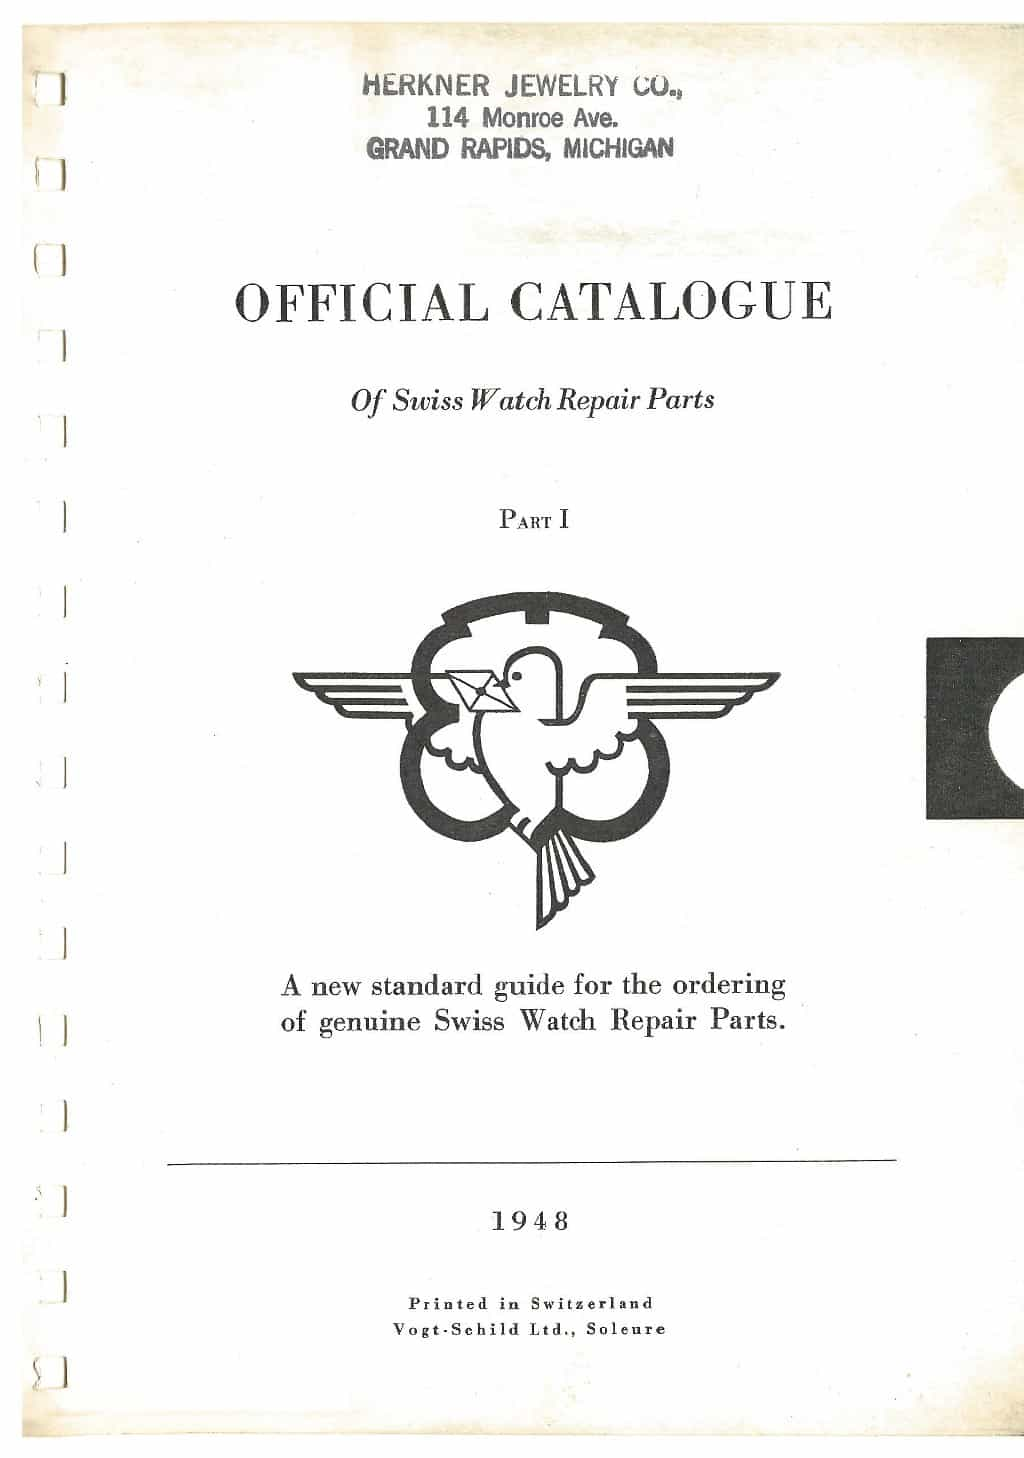 1948 Official Catalogue of Swiss Watch Repair Parts